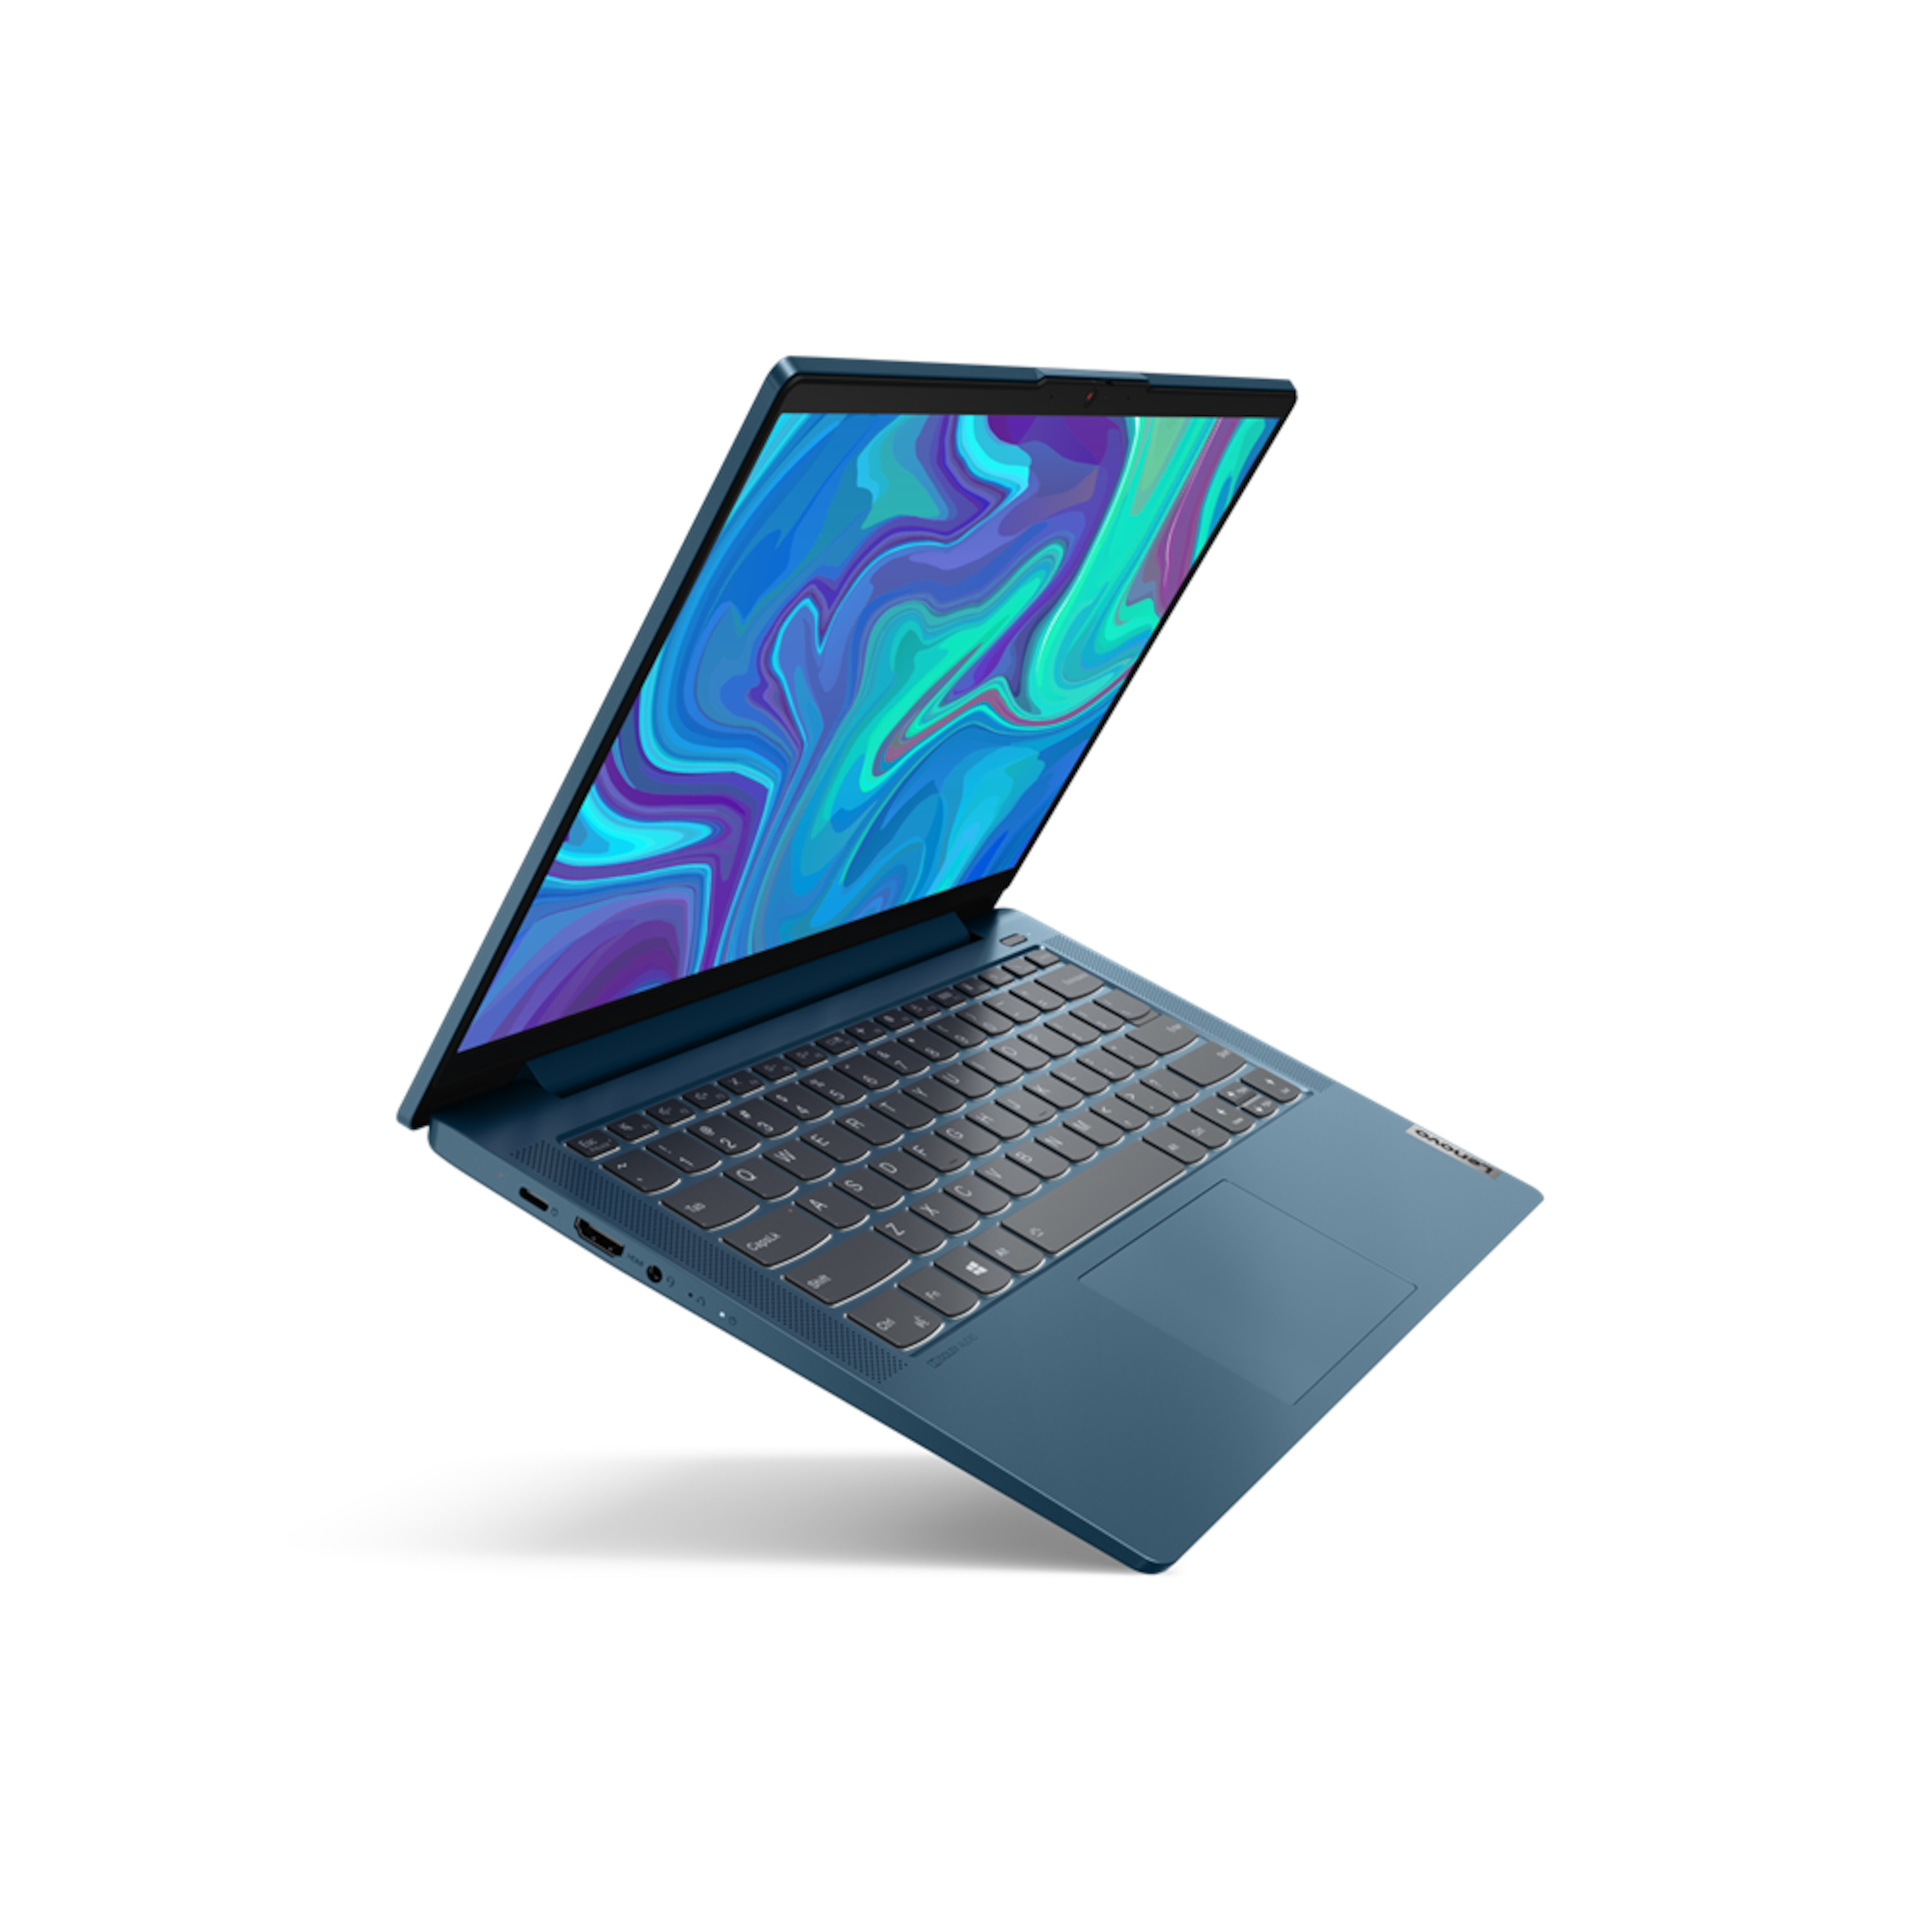 LENOVO IdeaPad™ 5 14IIL05, Intel® Core™ i5-1035G1, Windows 10 Home (S Modus), 35,5 cm (14) FHD Display, 512 GB PCIe SSD, 8 GB RAM, Notebook